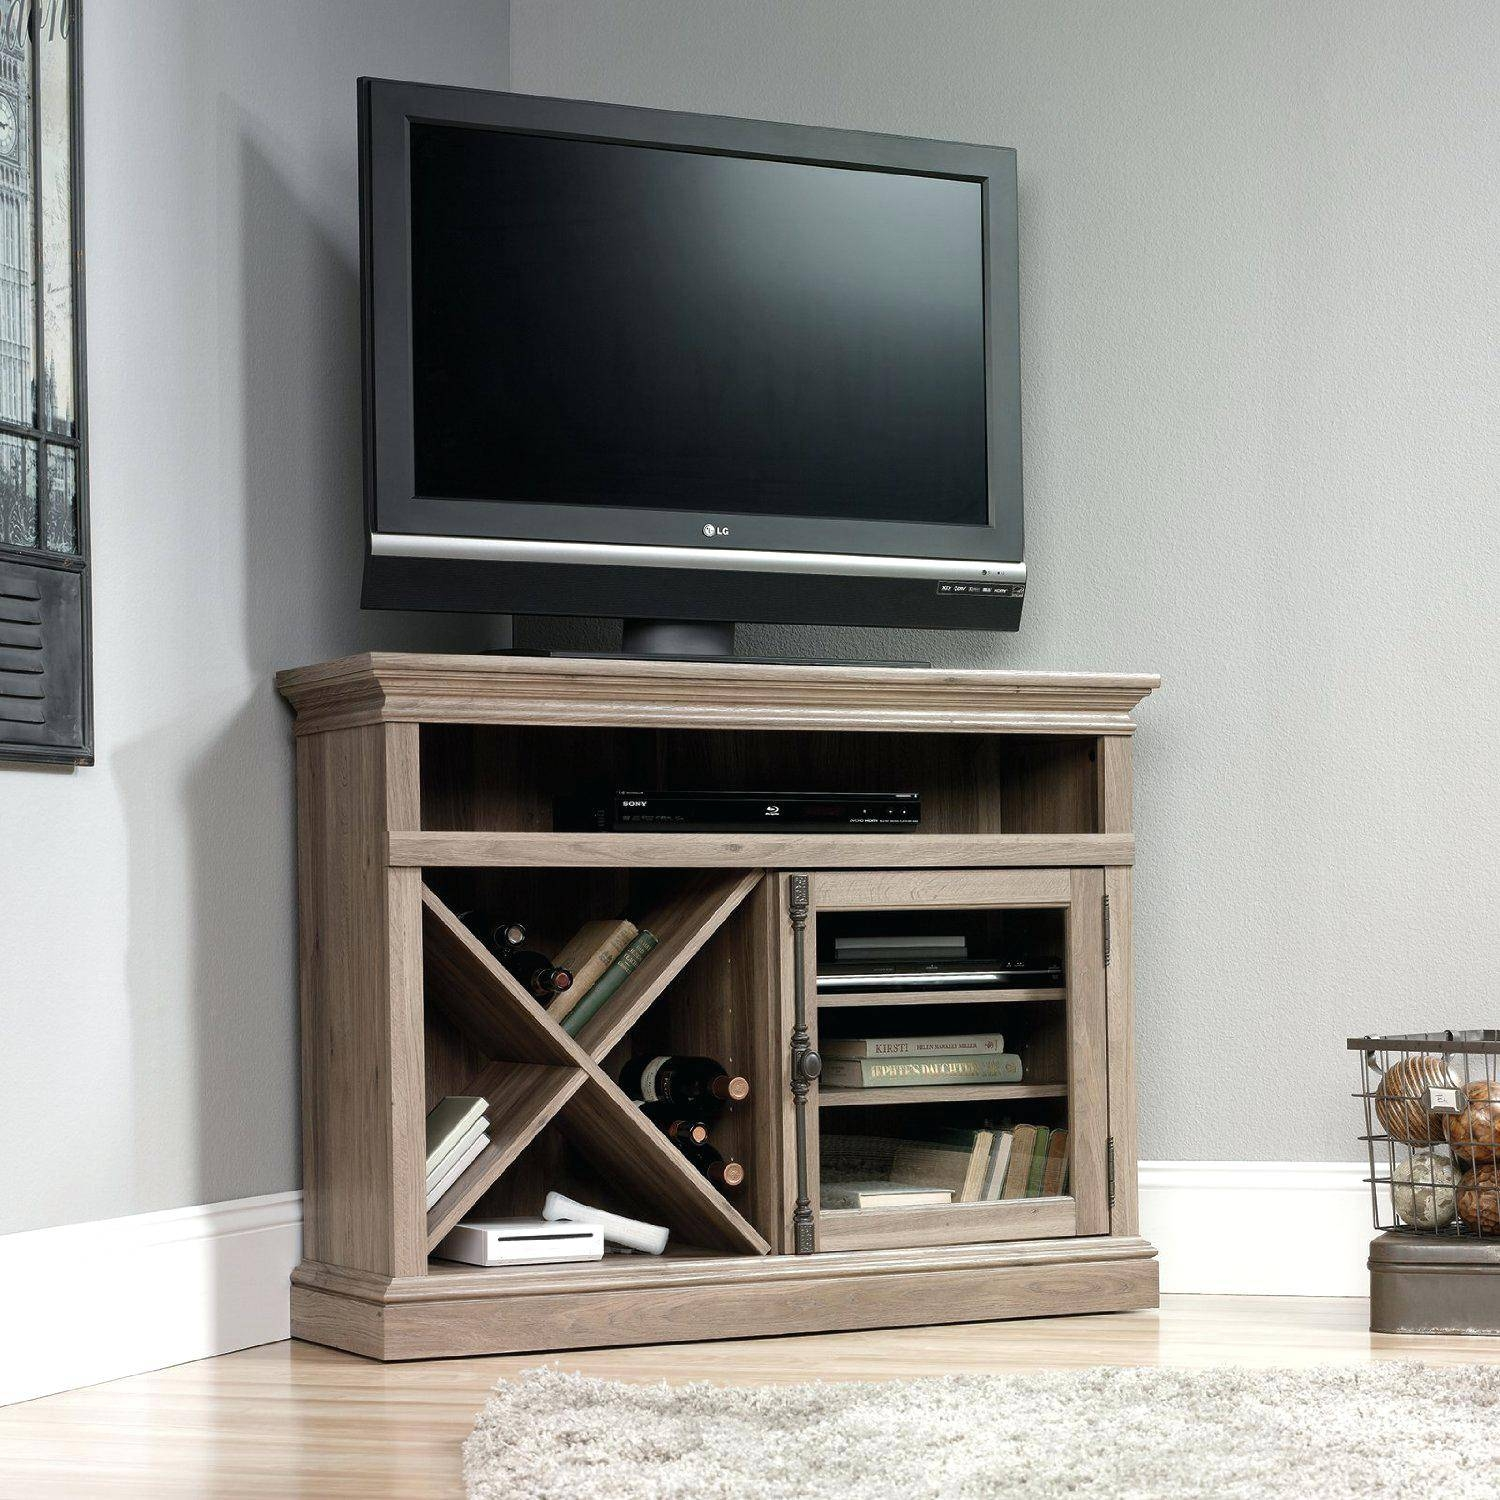 Tv Stand : Furniture Design 150 Enchanting Full Size Of Tv for Cornet Tv Stands (Image 11 of 15)